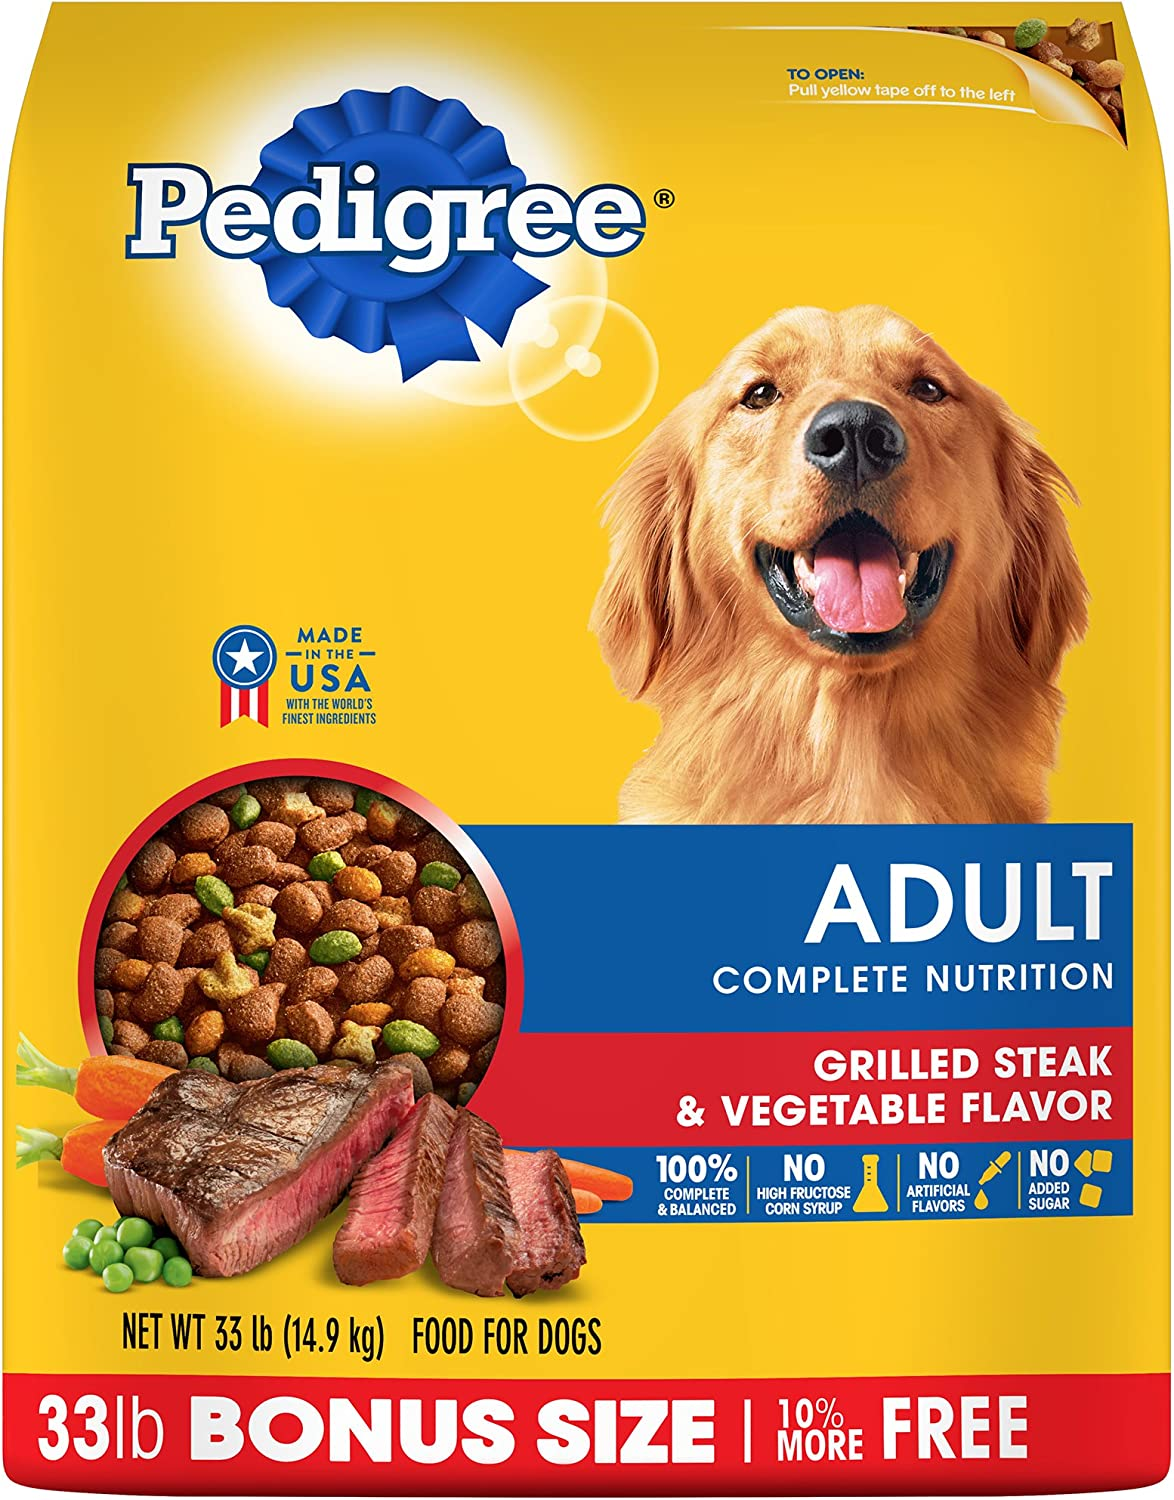 Pedigree Adult Dry Dog Food - Grilled Steak & Vegetable Flavor